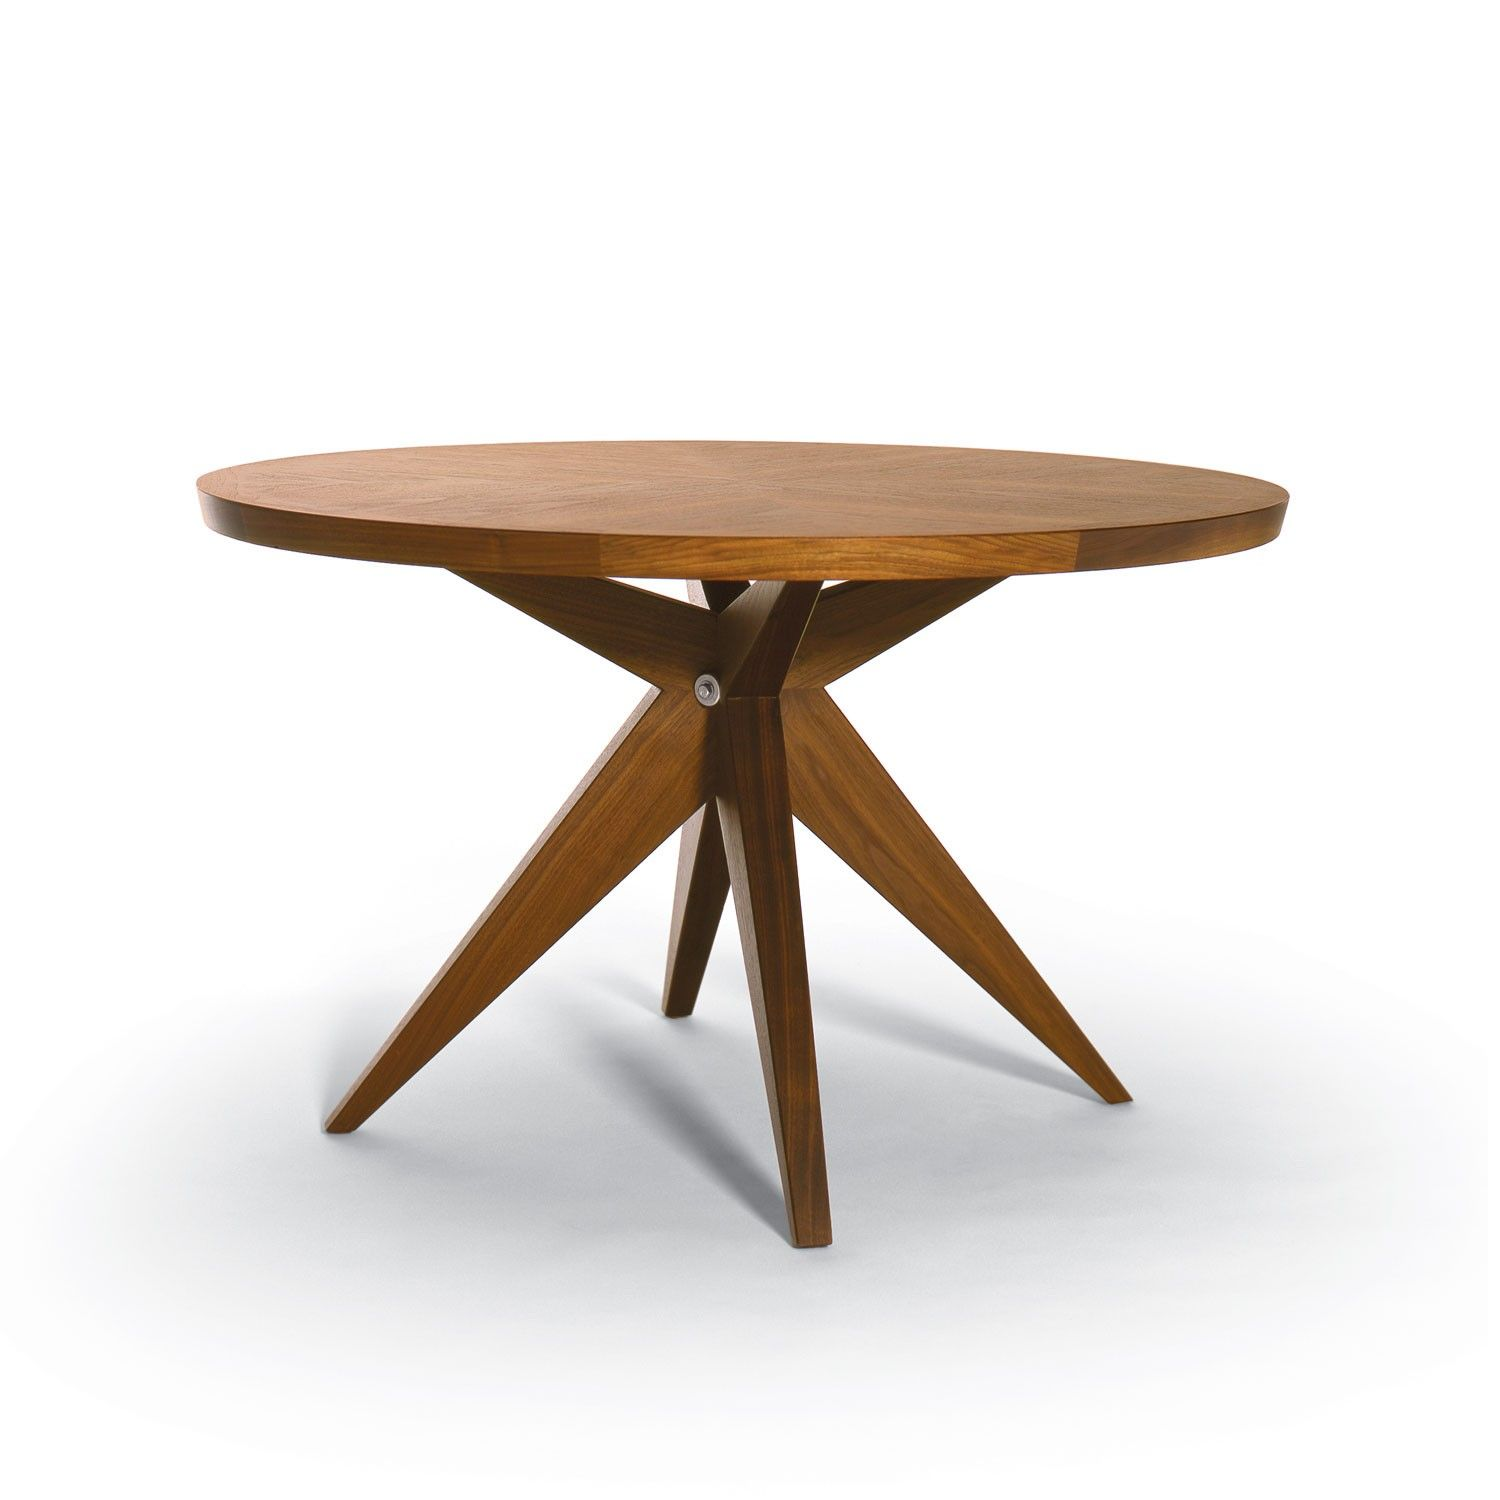 Modern Dining Table Round Oval Dining Room Furniture Modern Brown Polished  Round Teak With Eased Edge